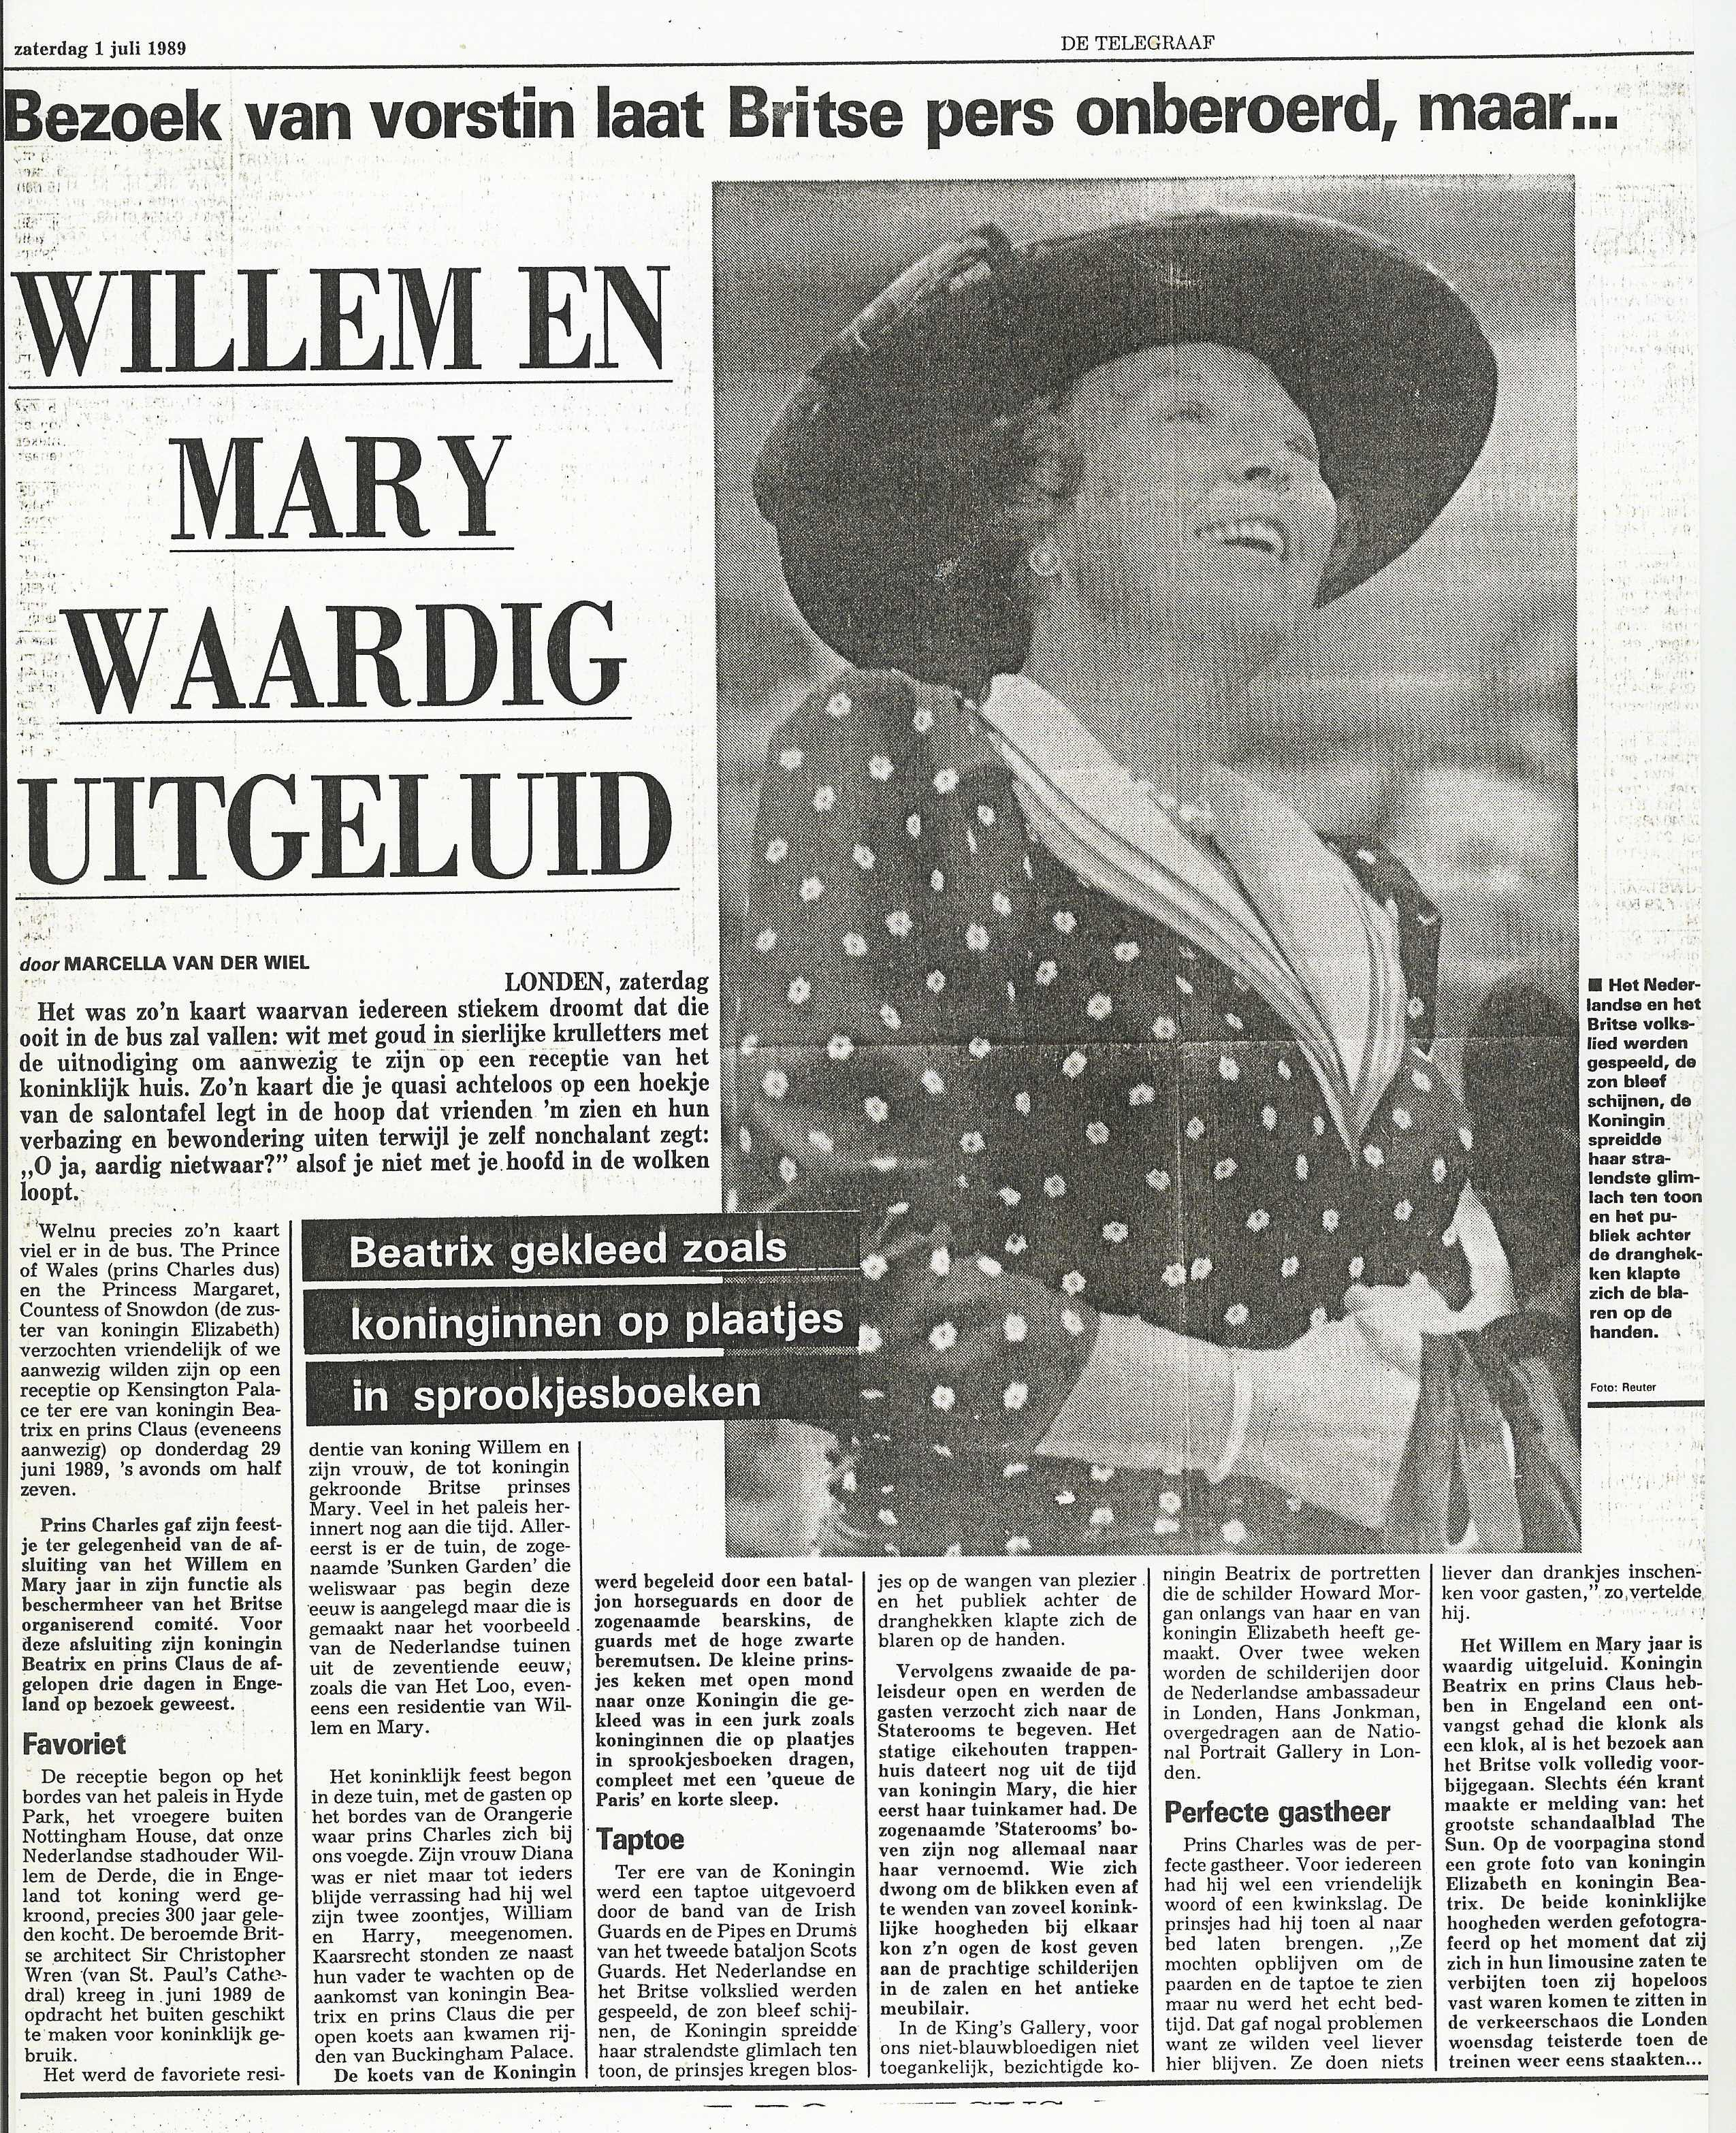 30 July 1989 – De Telegraaf Netherlands: Beatrix gekleed zoals koninginnen op plaatjes in sprookjesboeken (Beatrix dressed as a queen for the history books).